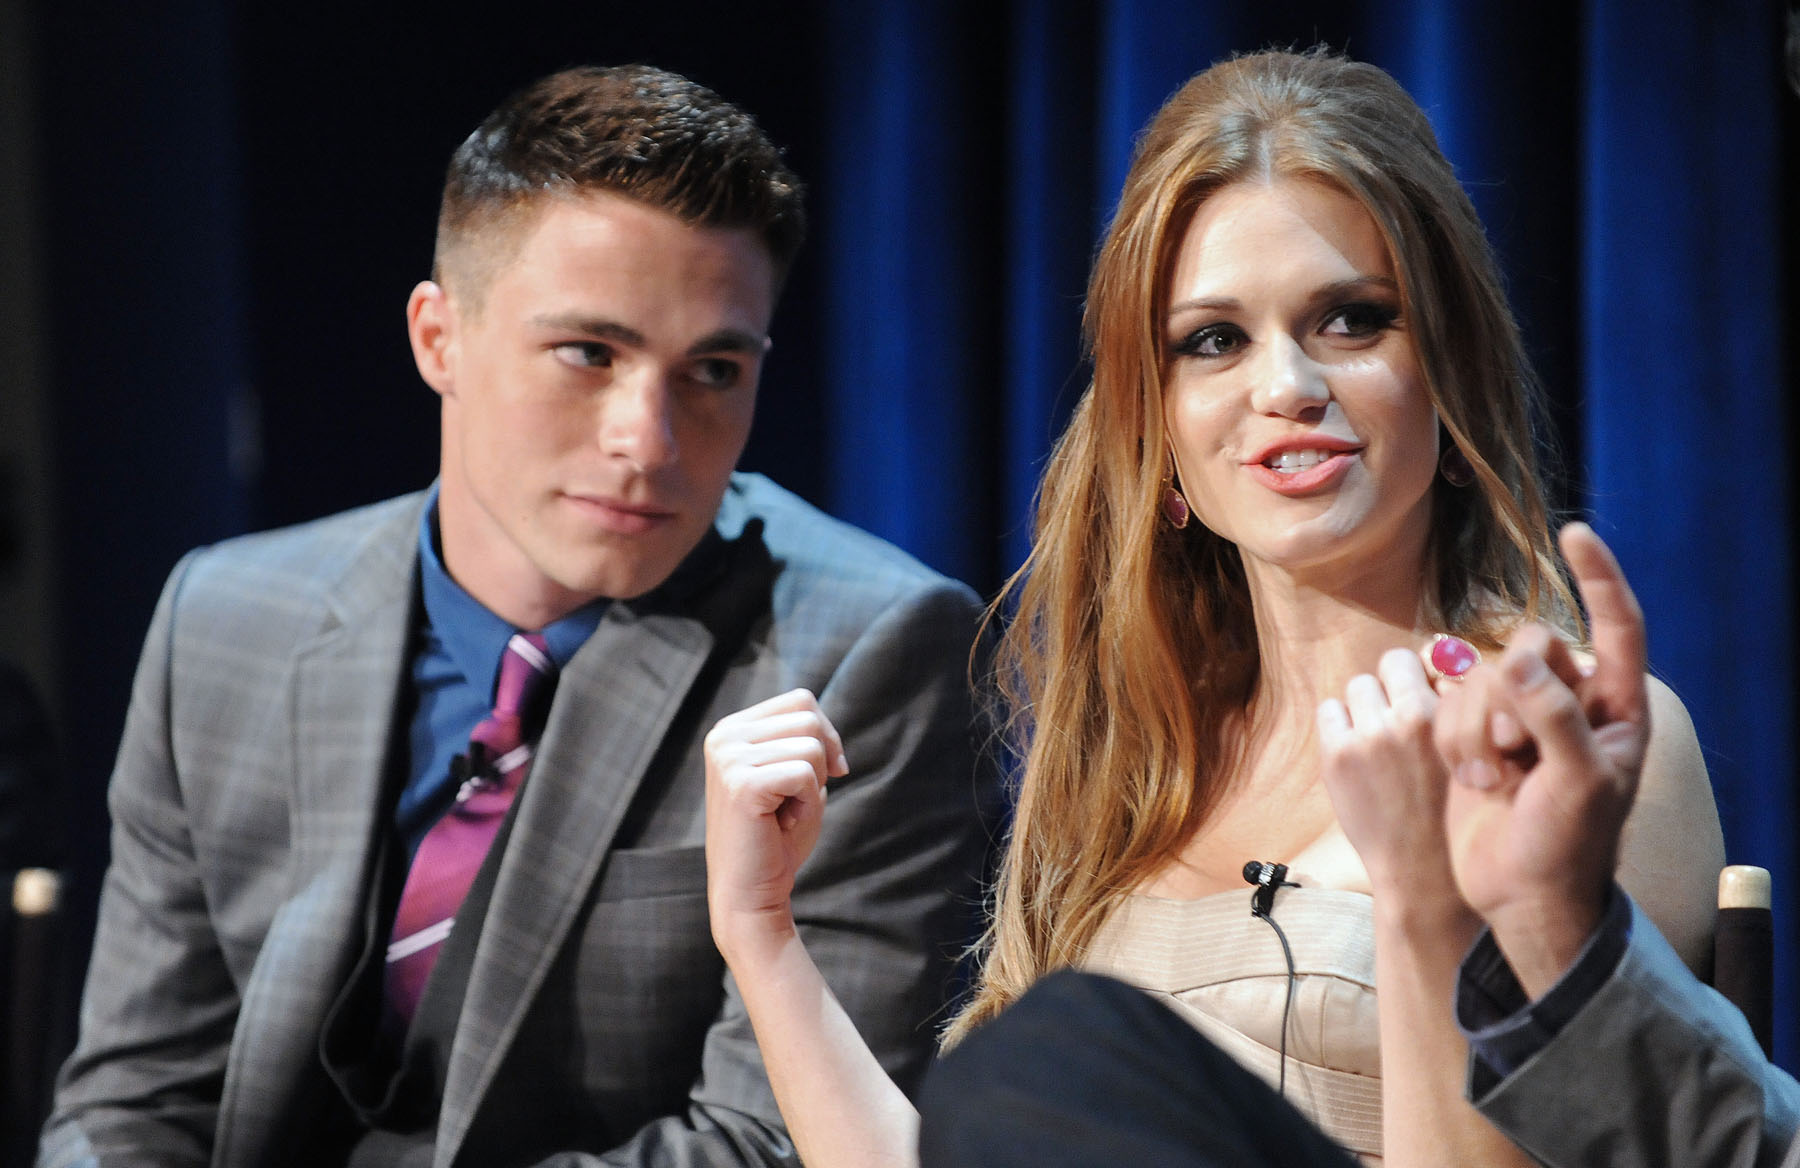 colton dating Teen wolf star colton haynes is engaged to his boyfriend jeff leatham, the actor announced sunday.